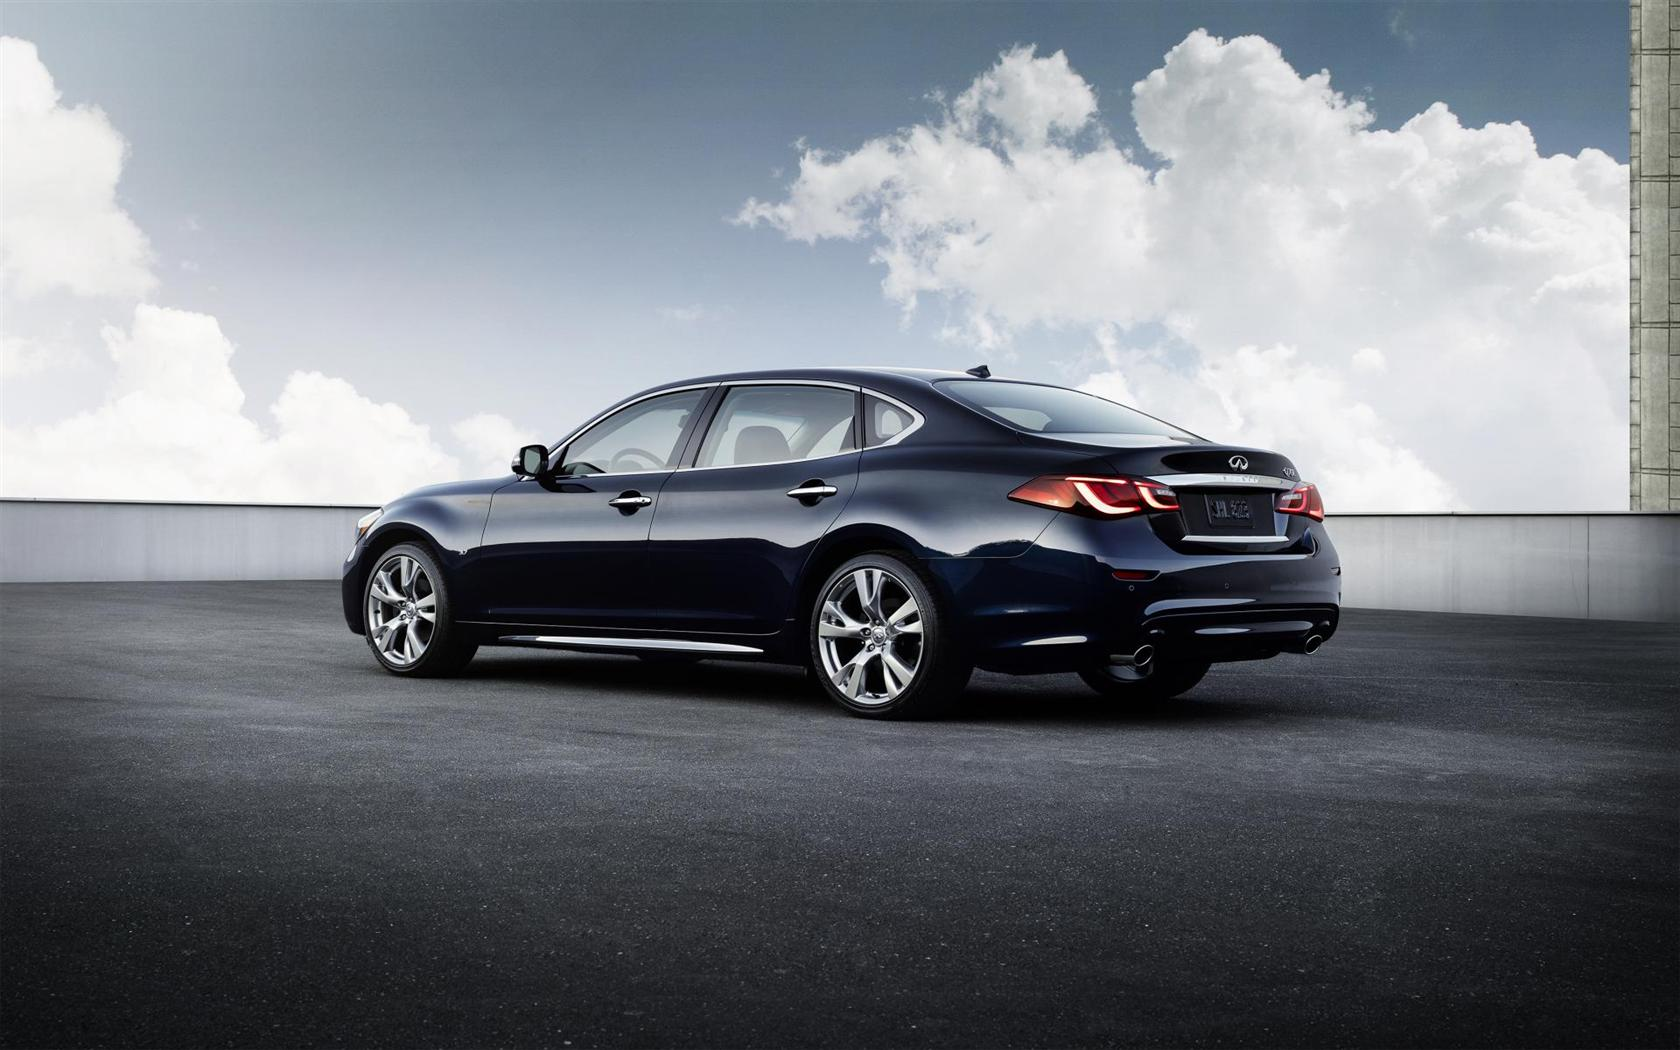 2015 Infiniti Q70 Images. Photo: 2015-Infiniti-Q70-Sedan-Photo-010